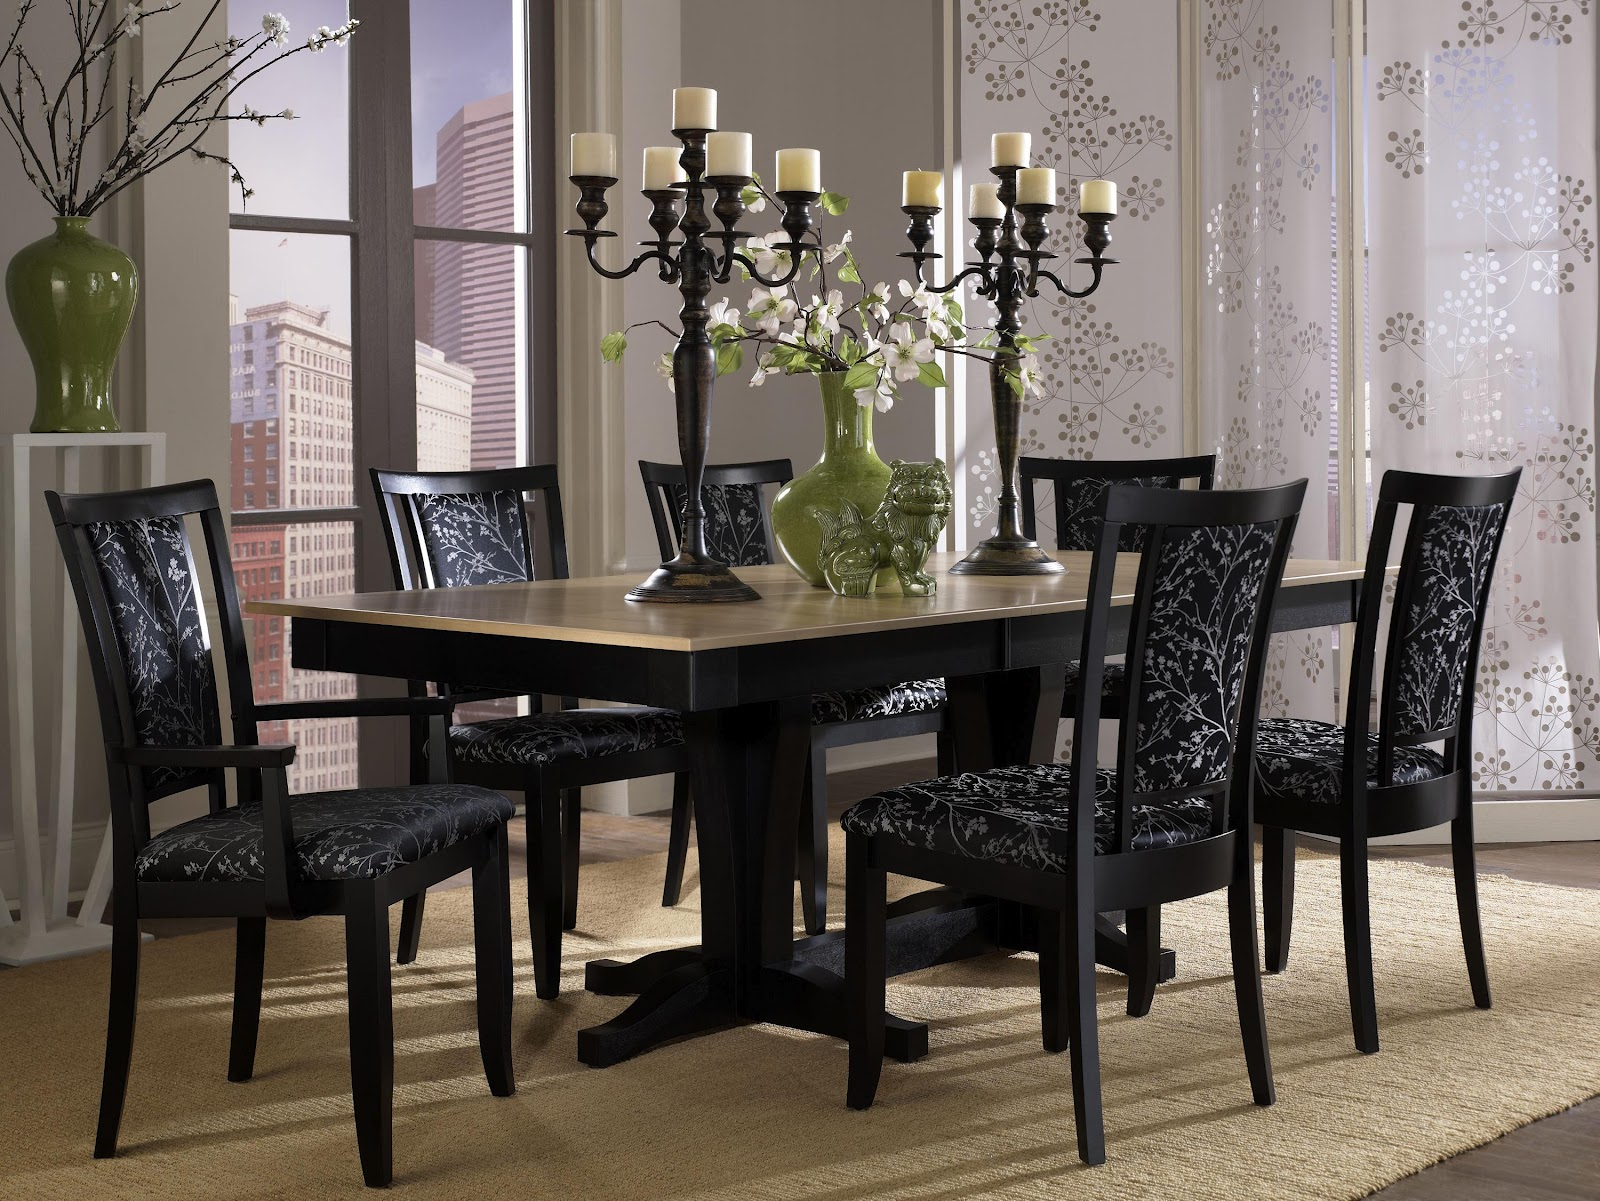 Canadel Dining Room Sets New York DINING ROOMUNIQUE  : CustomDining ContemporaryTAB0 4211 2034 M XC 4BAS b3 from uniquedinette.blogspot.com size 1600 x 1201 jpeg 487kB